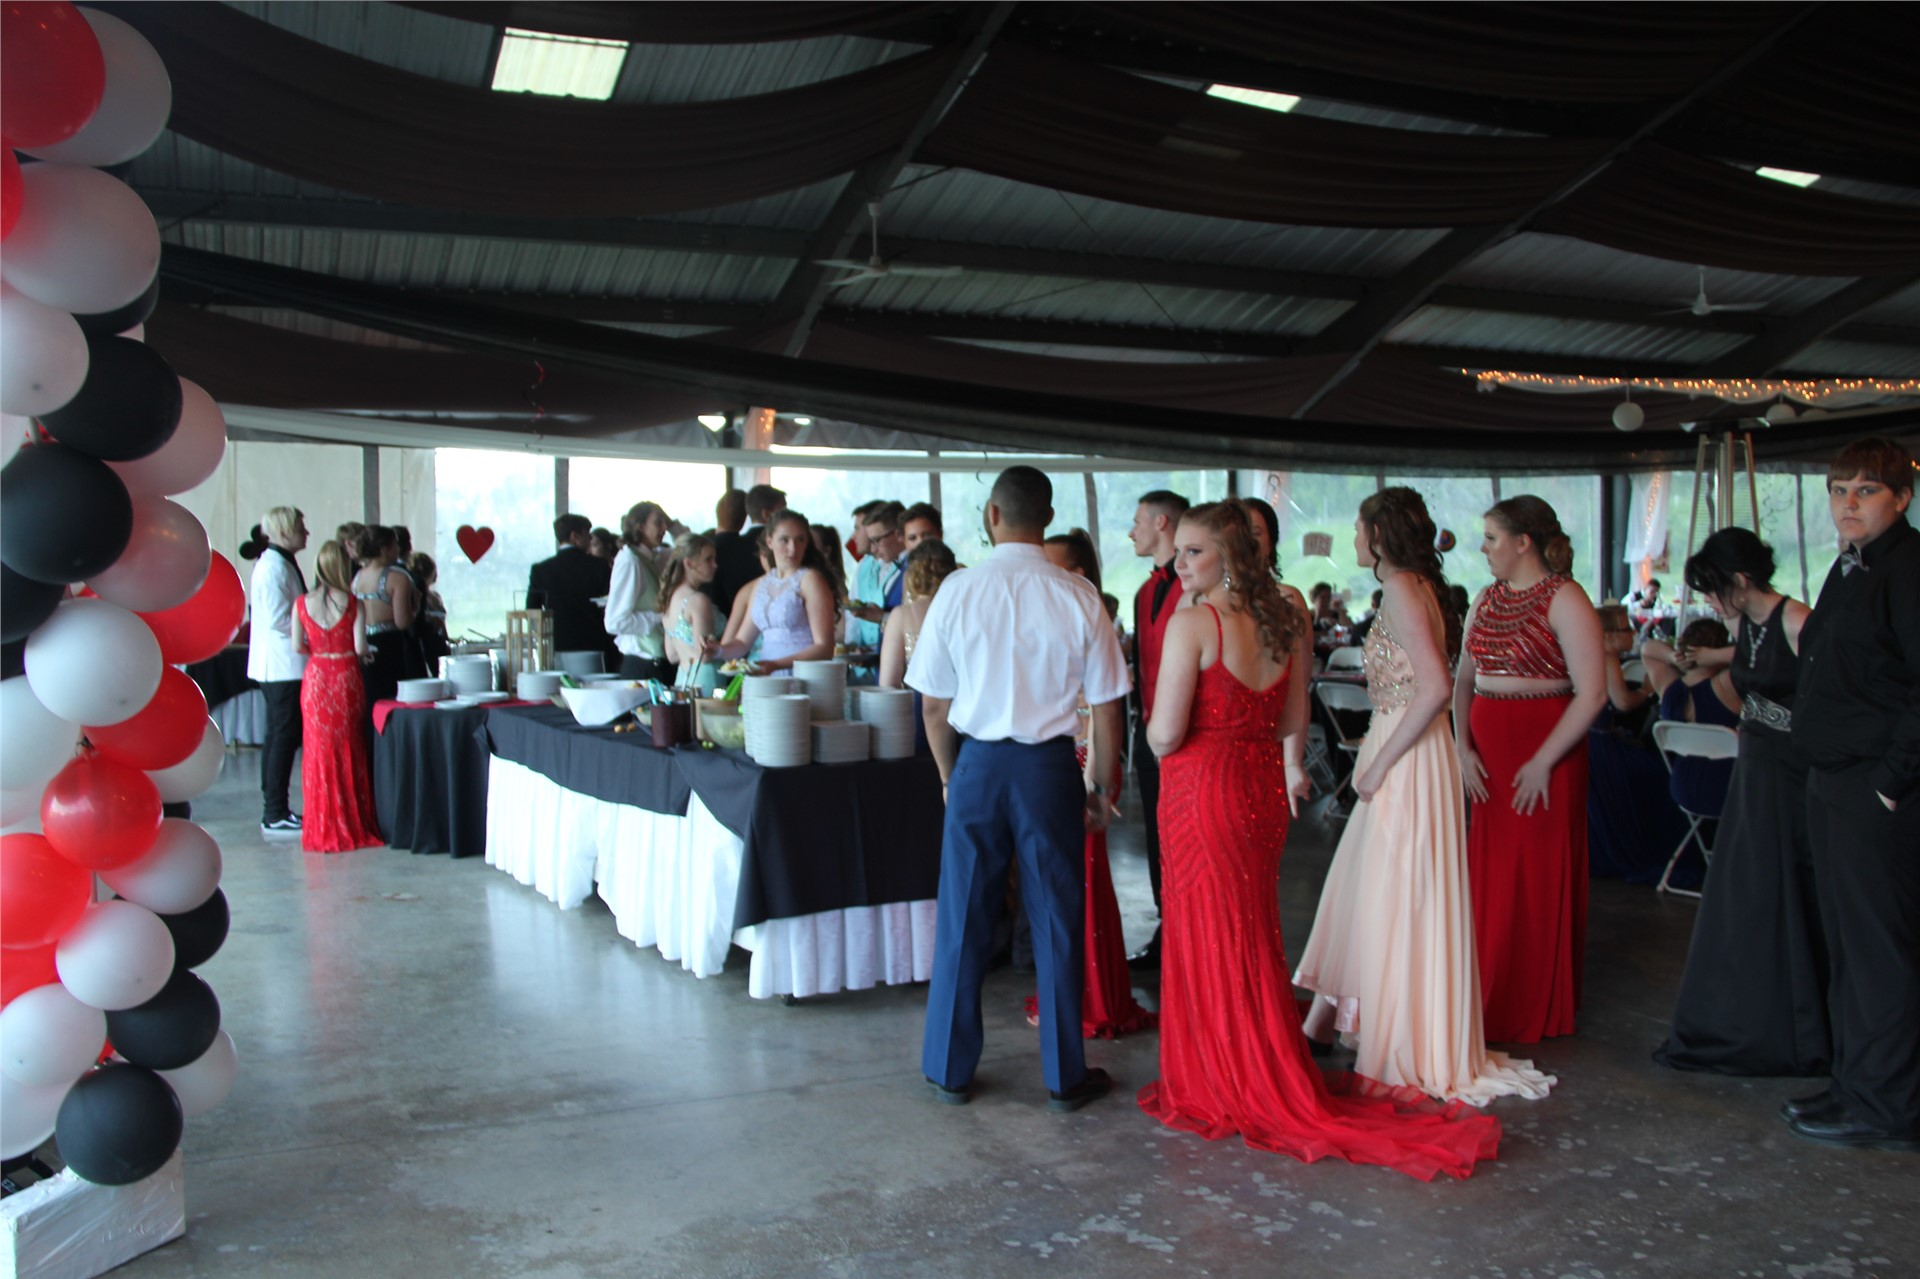 far away shot of students inside of prom venue